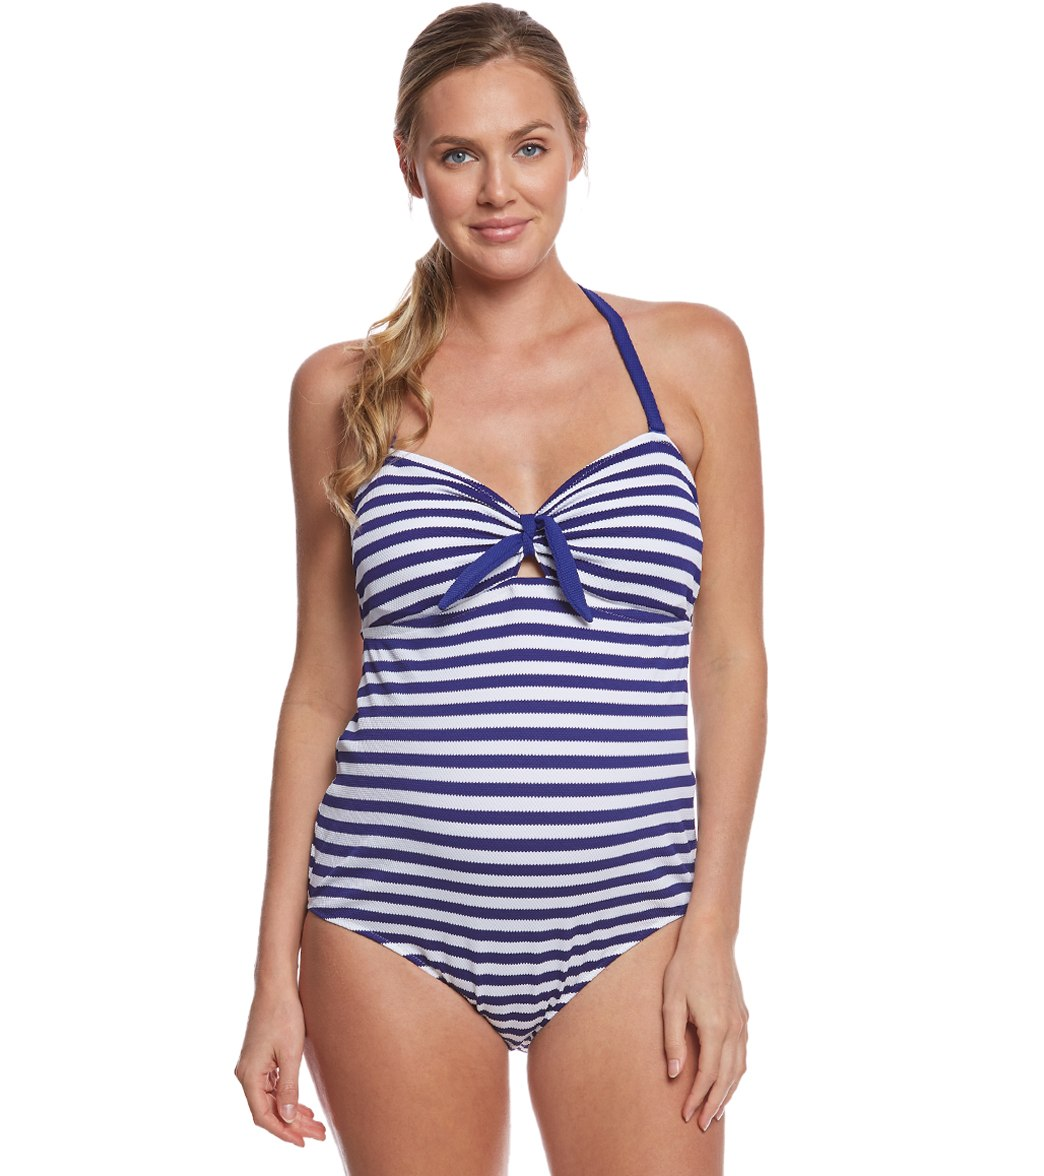 bab8ecd2c8e05 ... Maternity Rimini Textured Marine Striped One Piece Swimsuit. Play  Video. MODEL MEASUREMENTS